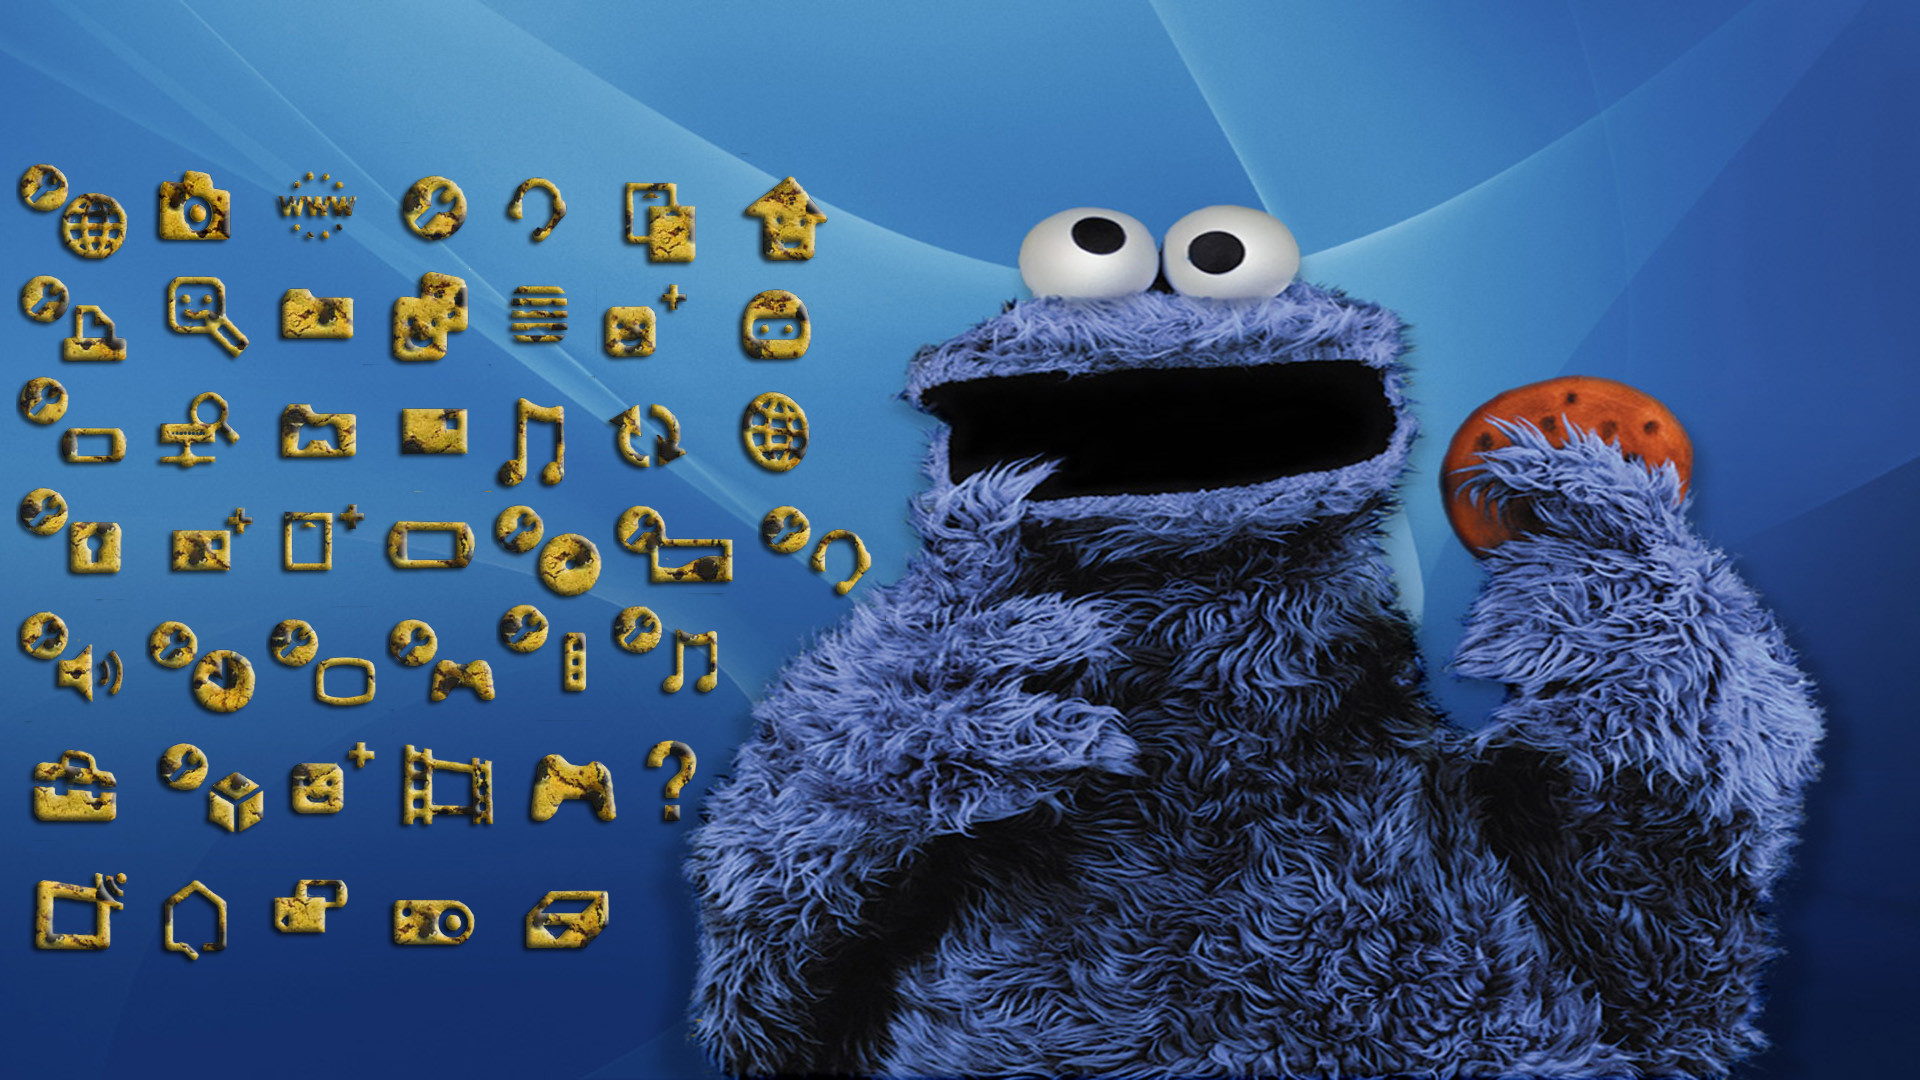 Cute cookie monster wallpaper 58 images - Cookie monster wallpaper ...